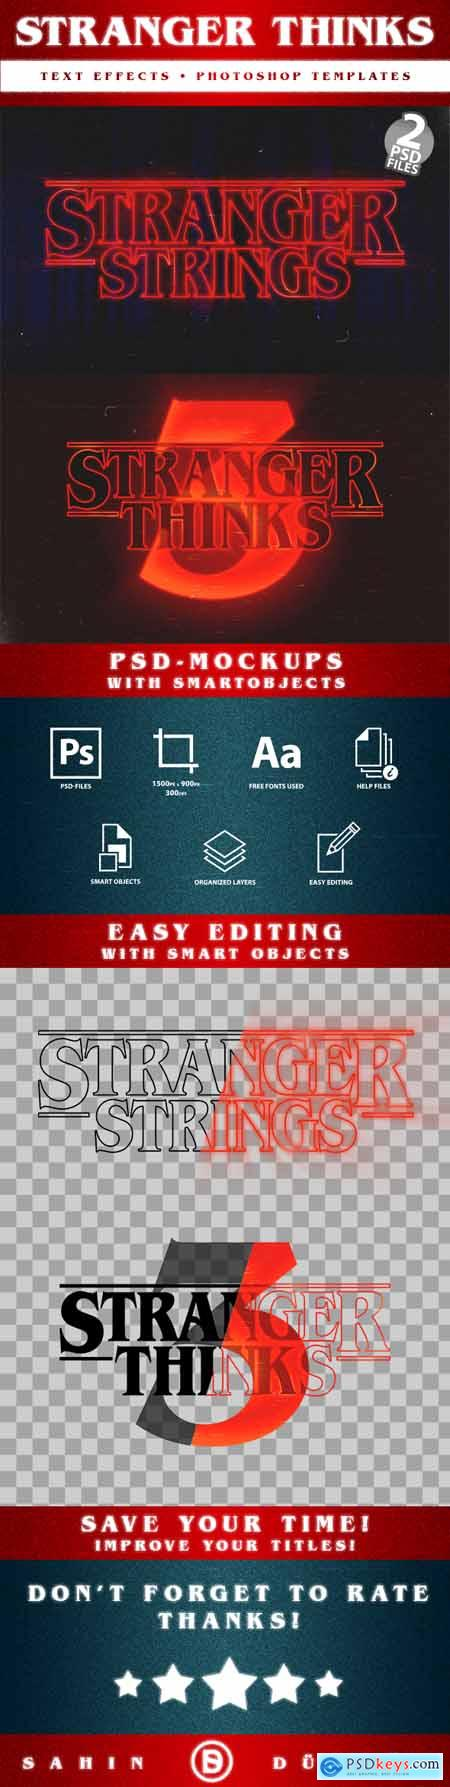 Stranger Thinks - Text-Effects-Mockups - Template-Package 27600427